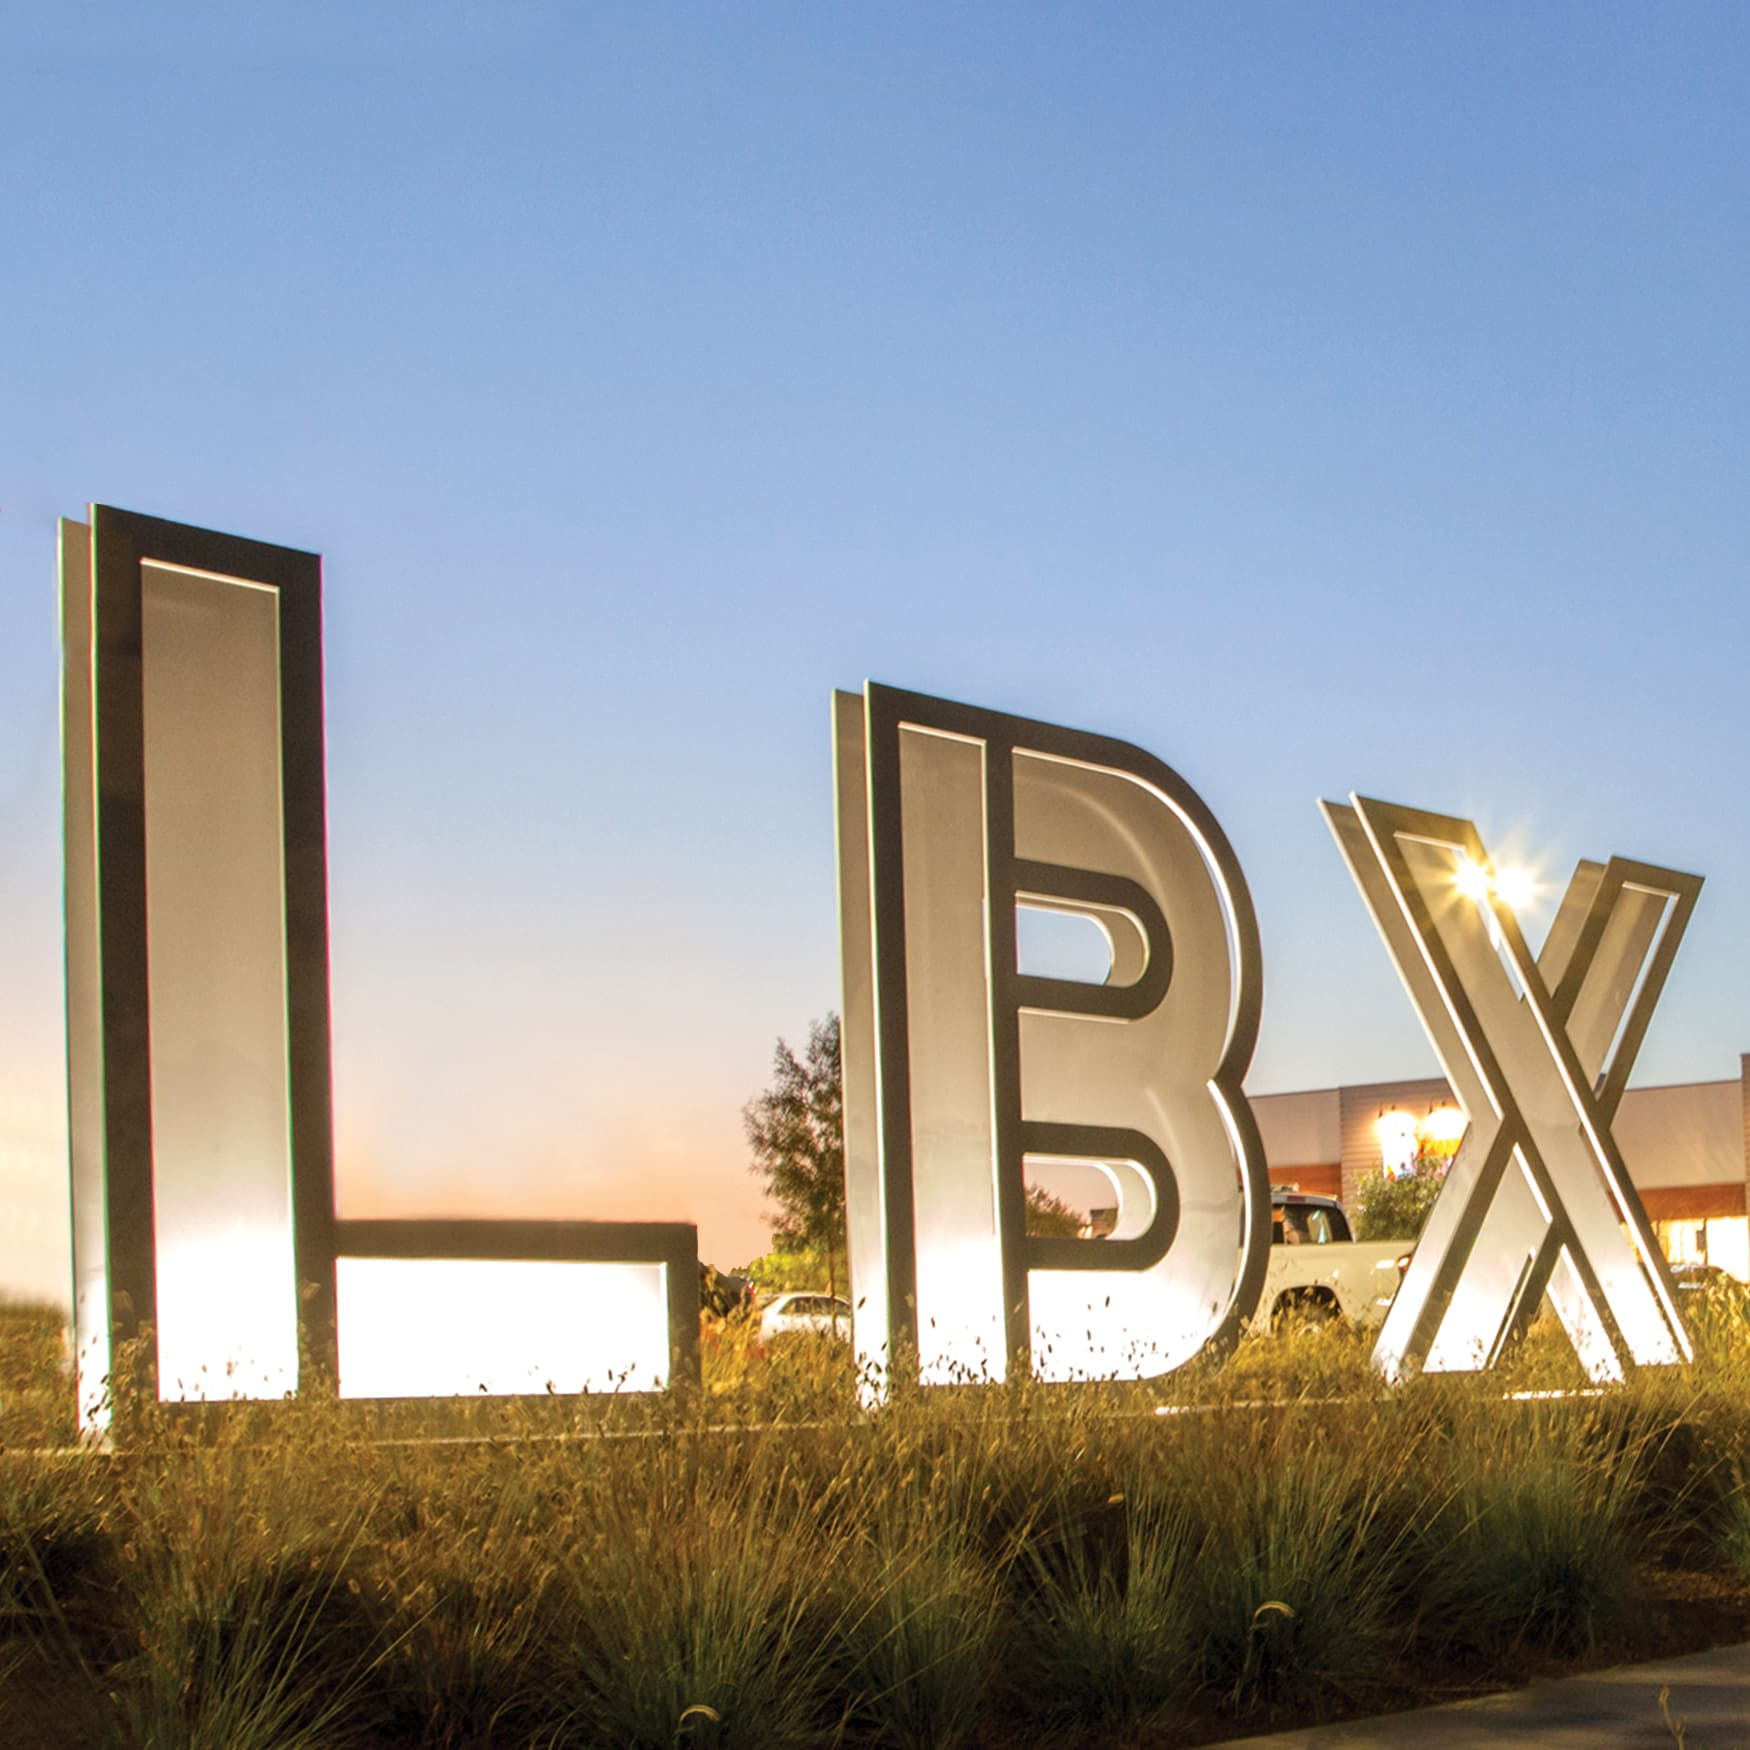 Long Beach Exchange monument large letter signage illuminated at dusk